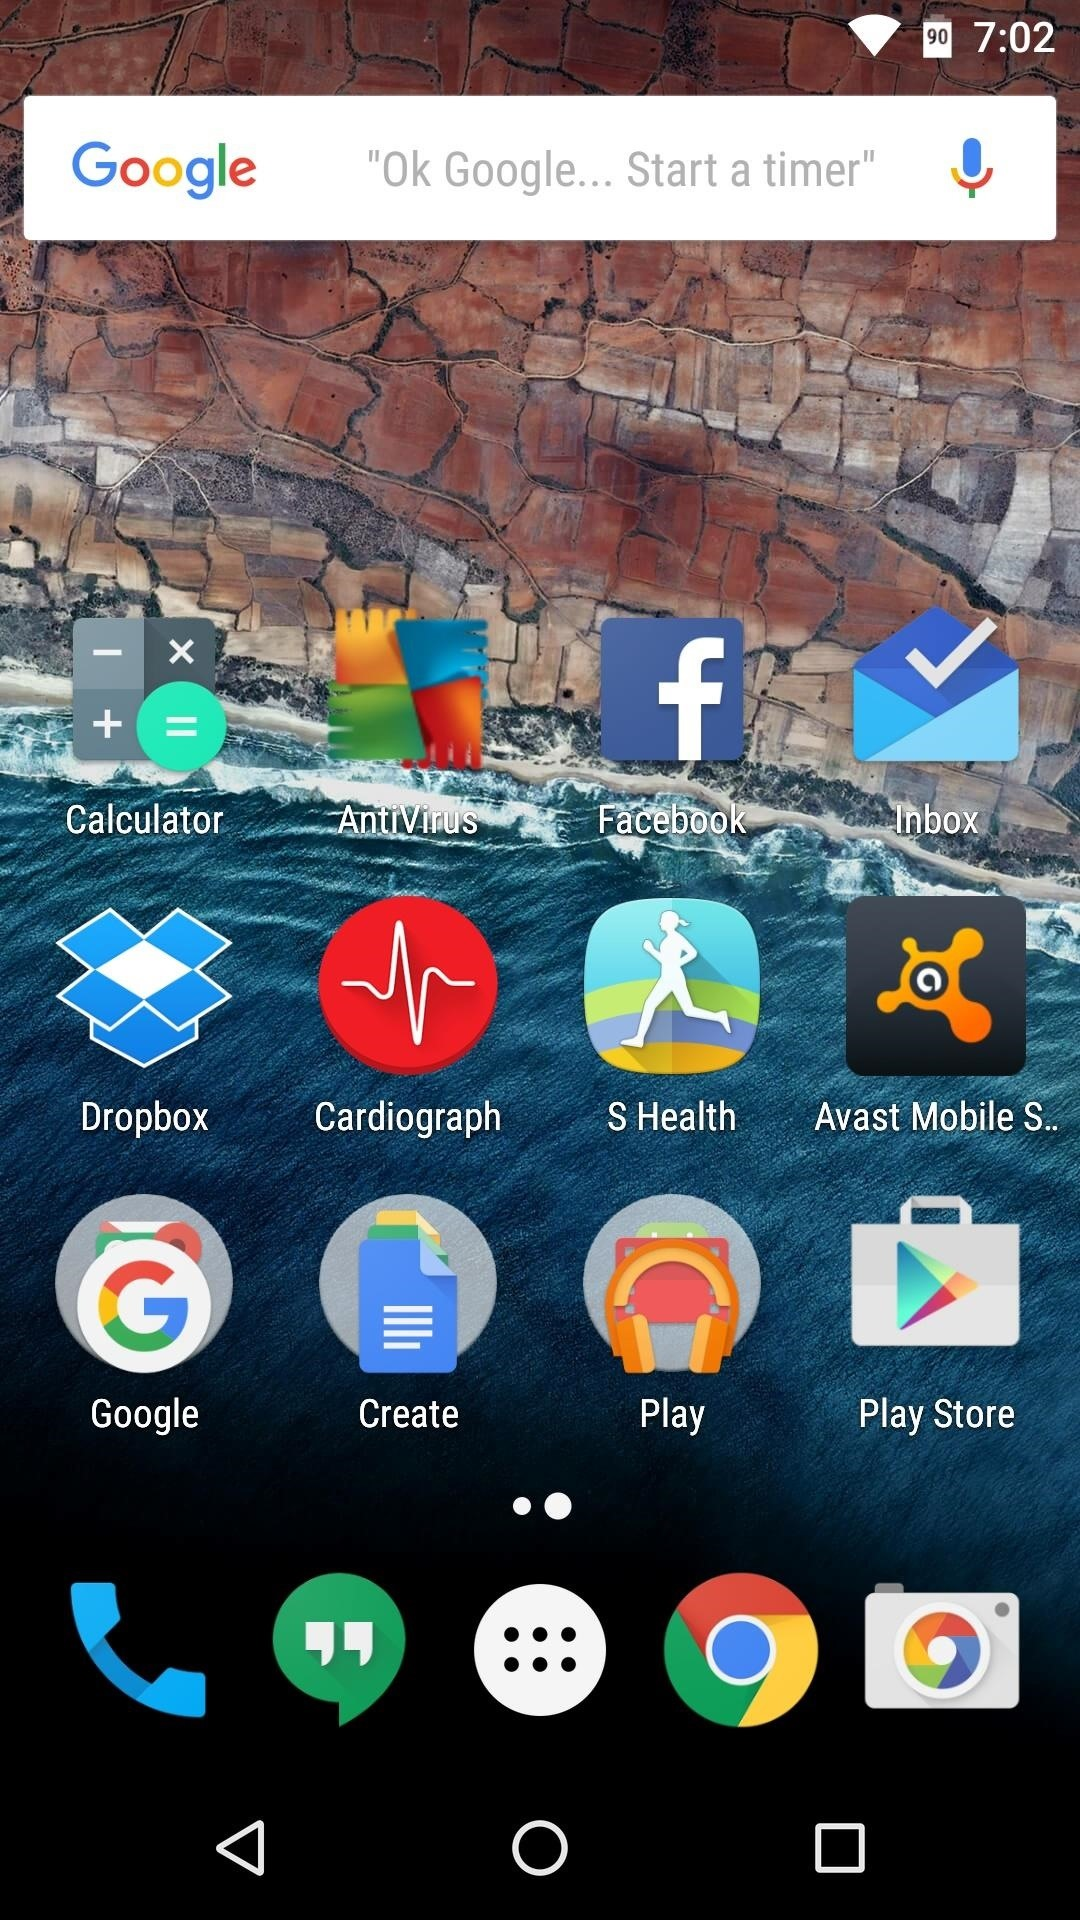 How to Make an Android Phone or Tablet Grandma-Friendly